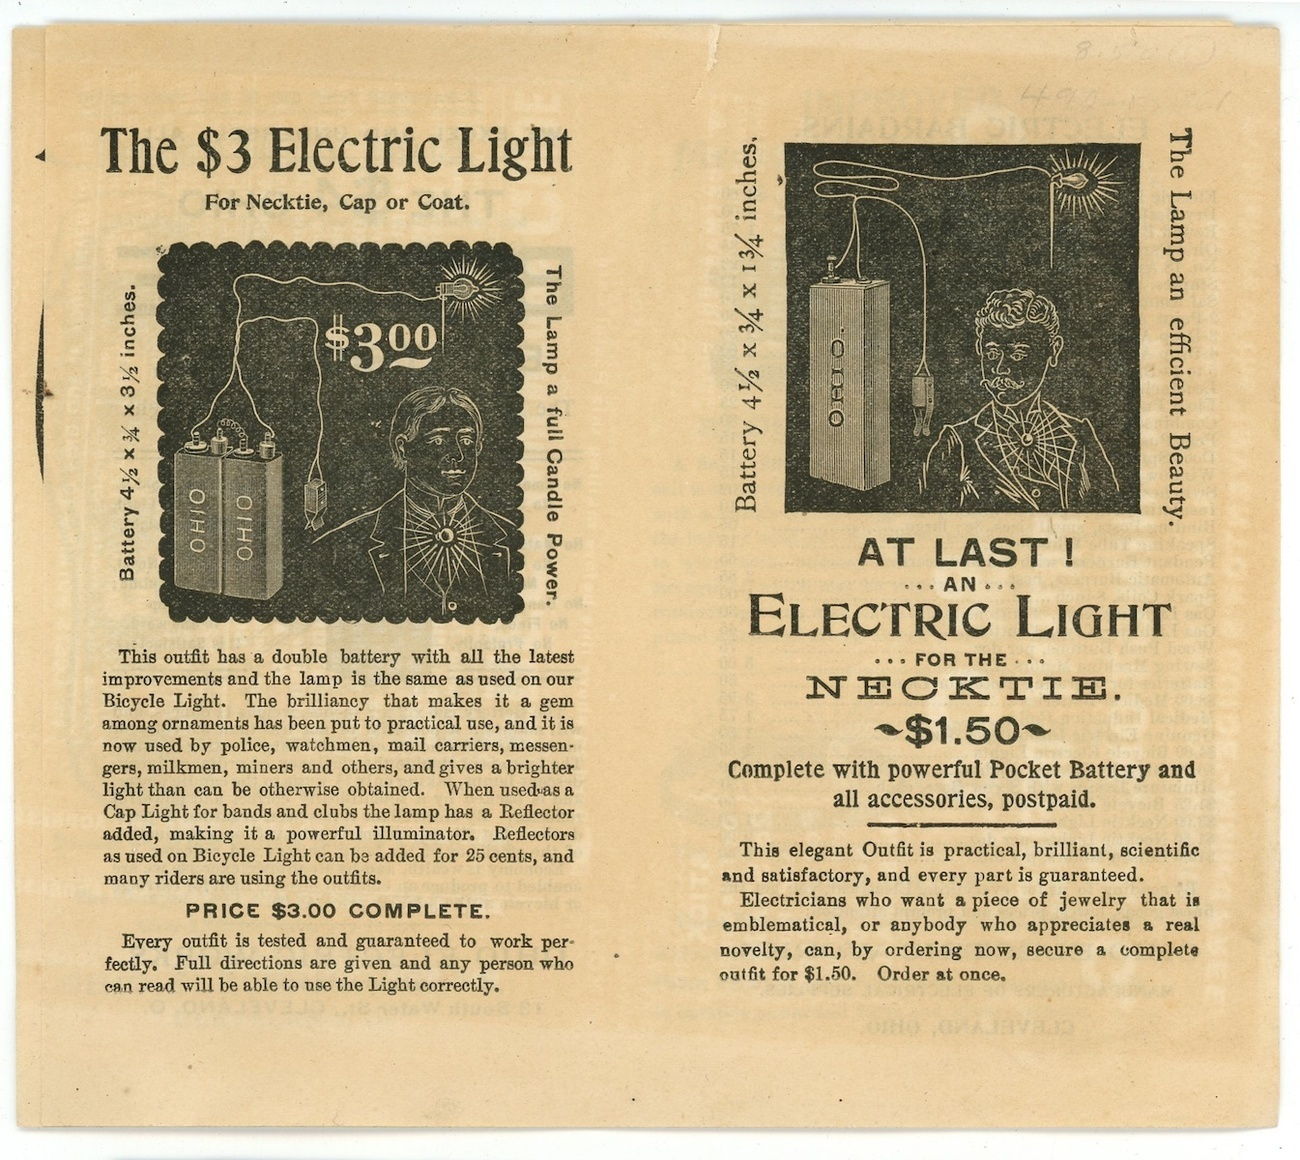 Ohio Electric Co early brochure 1890's Cleveland Ohio Edison ephemera vintage